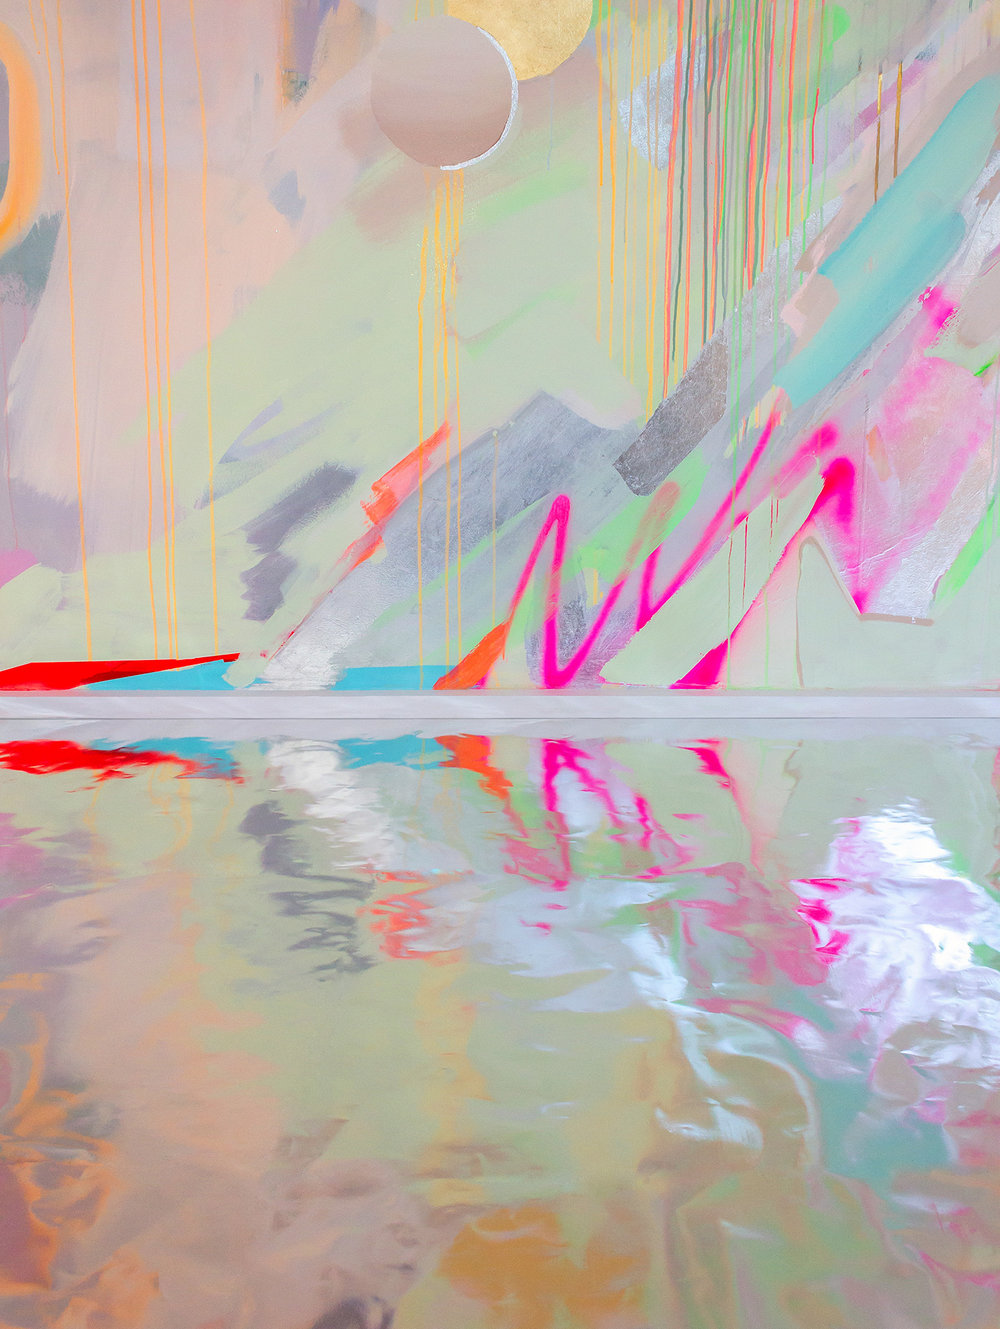 Detail shot of galaxy wall mural in bright neon colours, the silver metallic floor reflects the image.